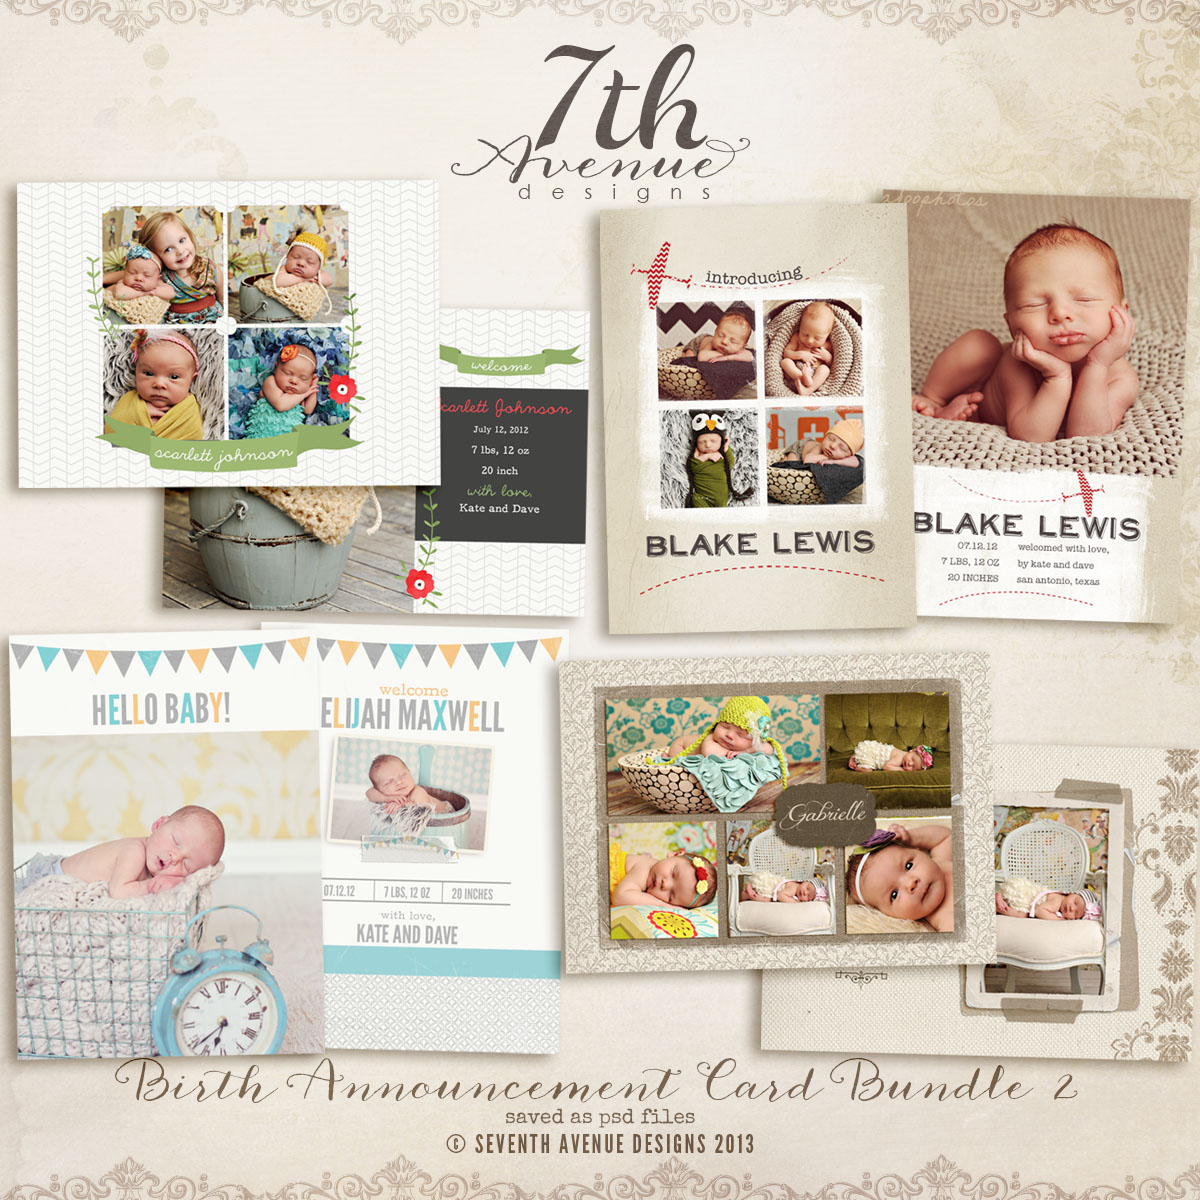 Birth Announcement Card Templates Bundle 2 cardsbacbundle2 – Birth Announcement Card